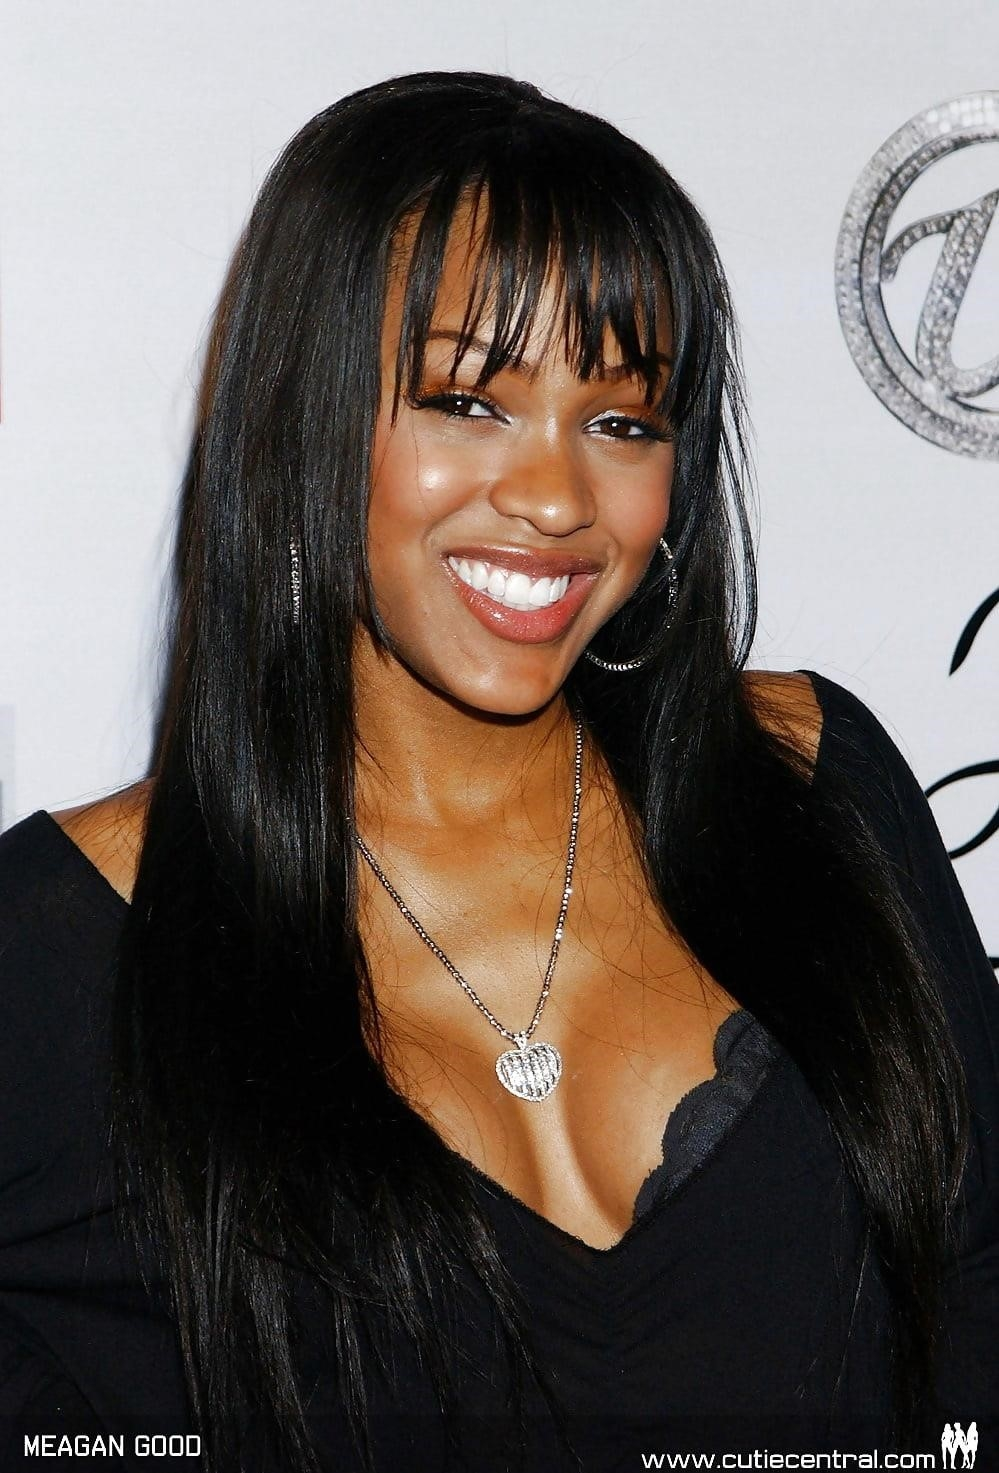 Meagan good nude pictures-1481